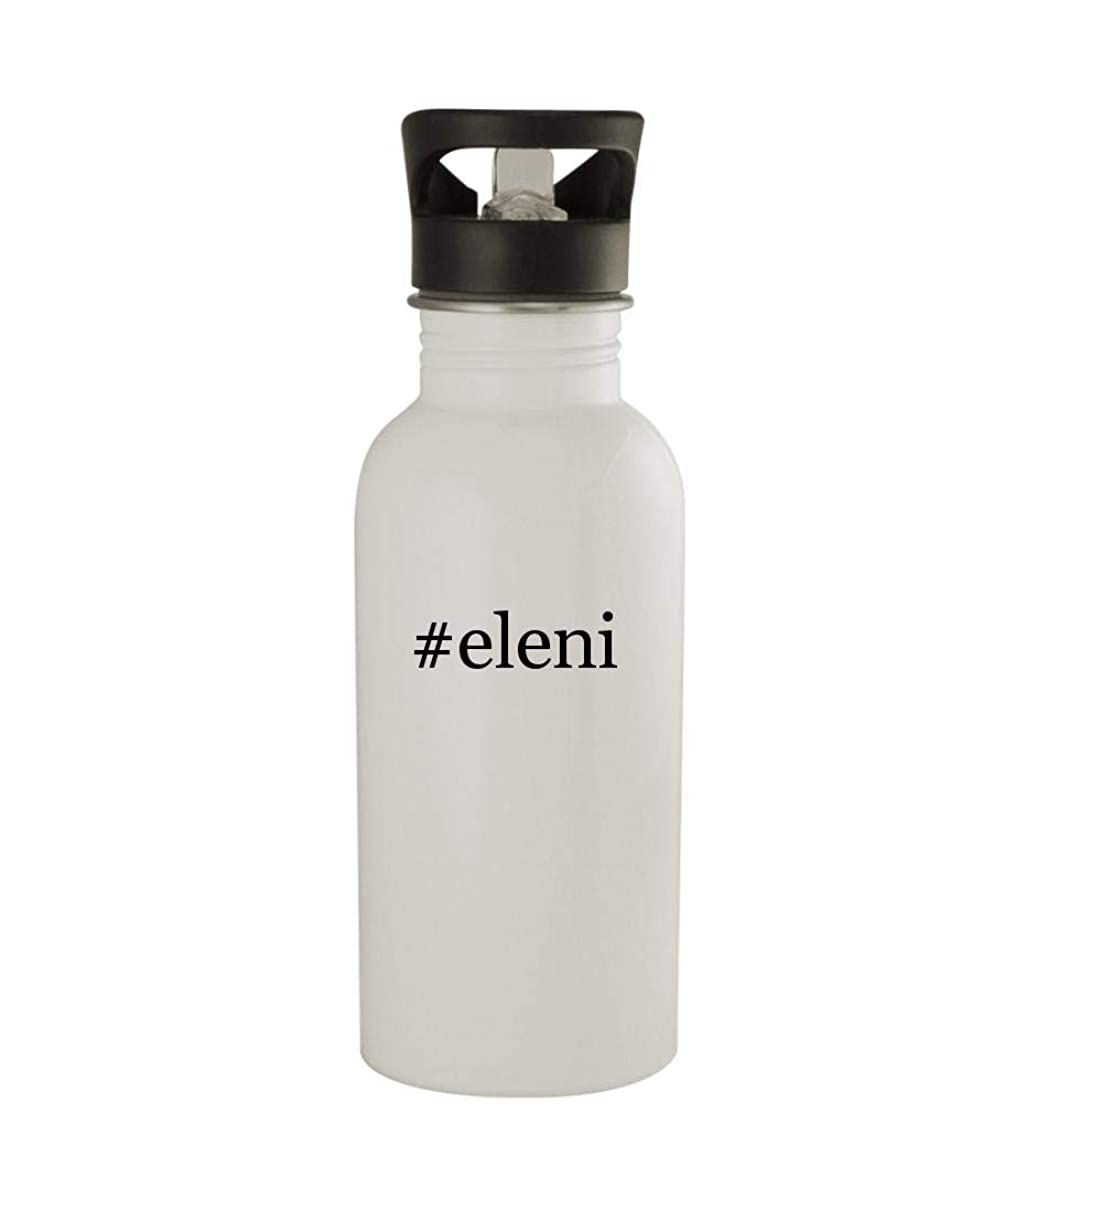 Knick Knack Gifts #Eleni - 20oz Sturdy Hashtag Stainless Steel Water Bottle